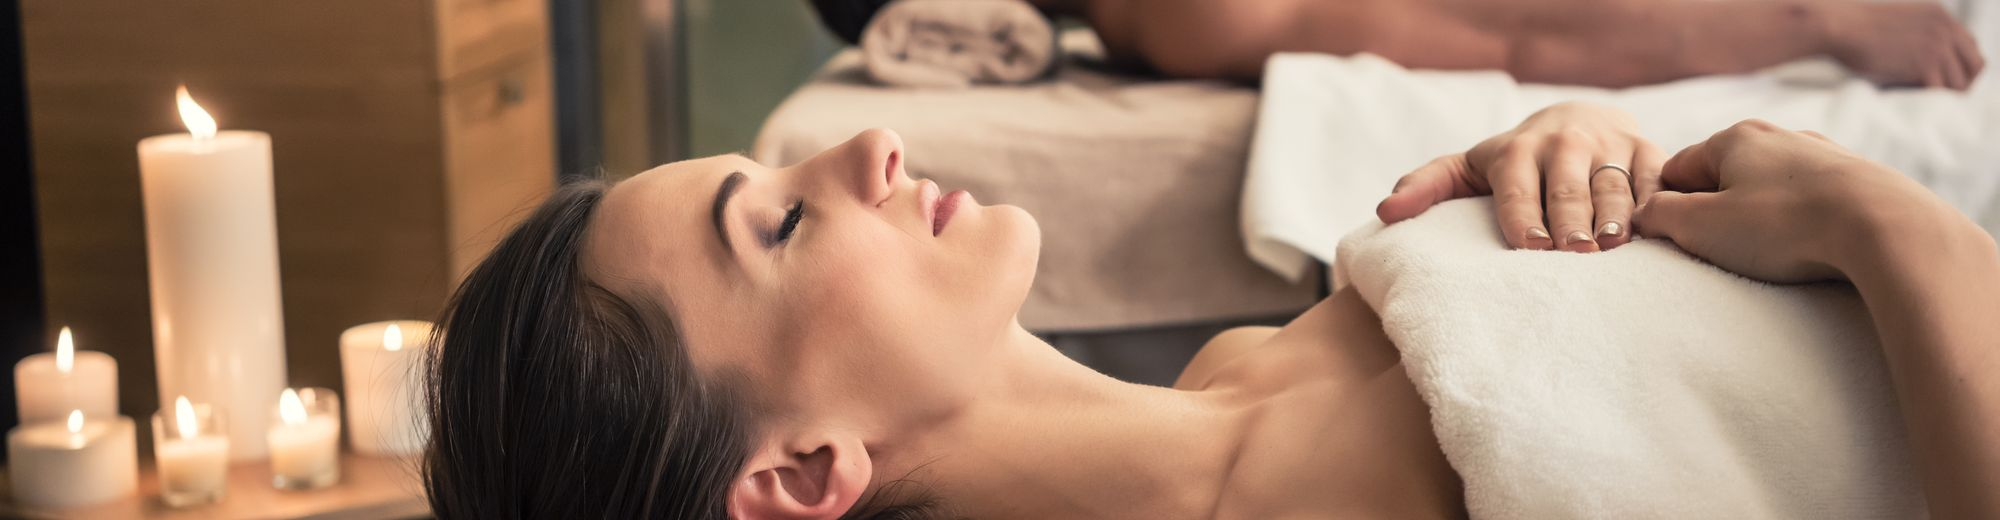 Wellness-Massagen in erholsamer Umgebung | © Kzenon - stock.adobe.com